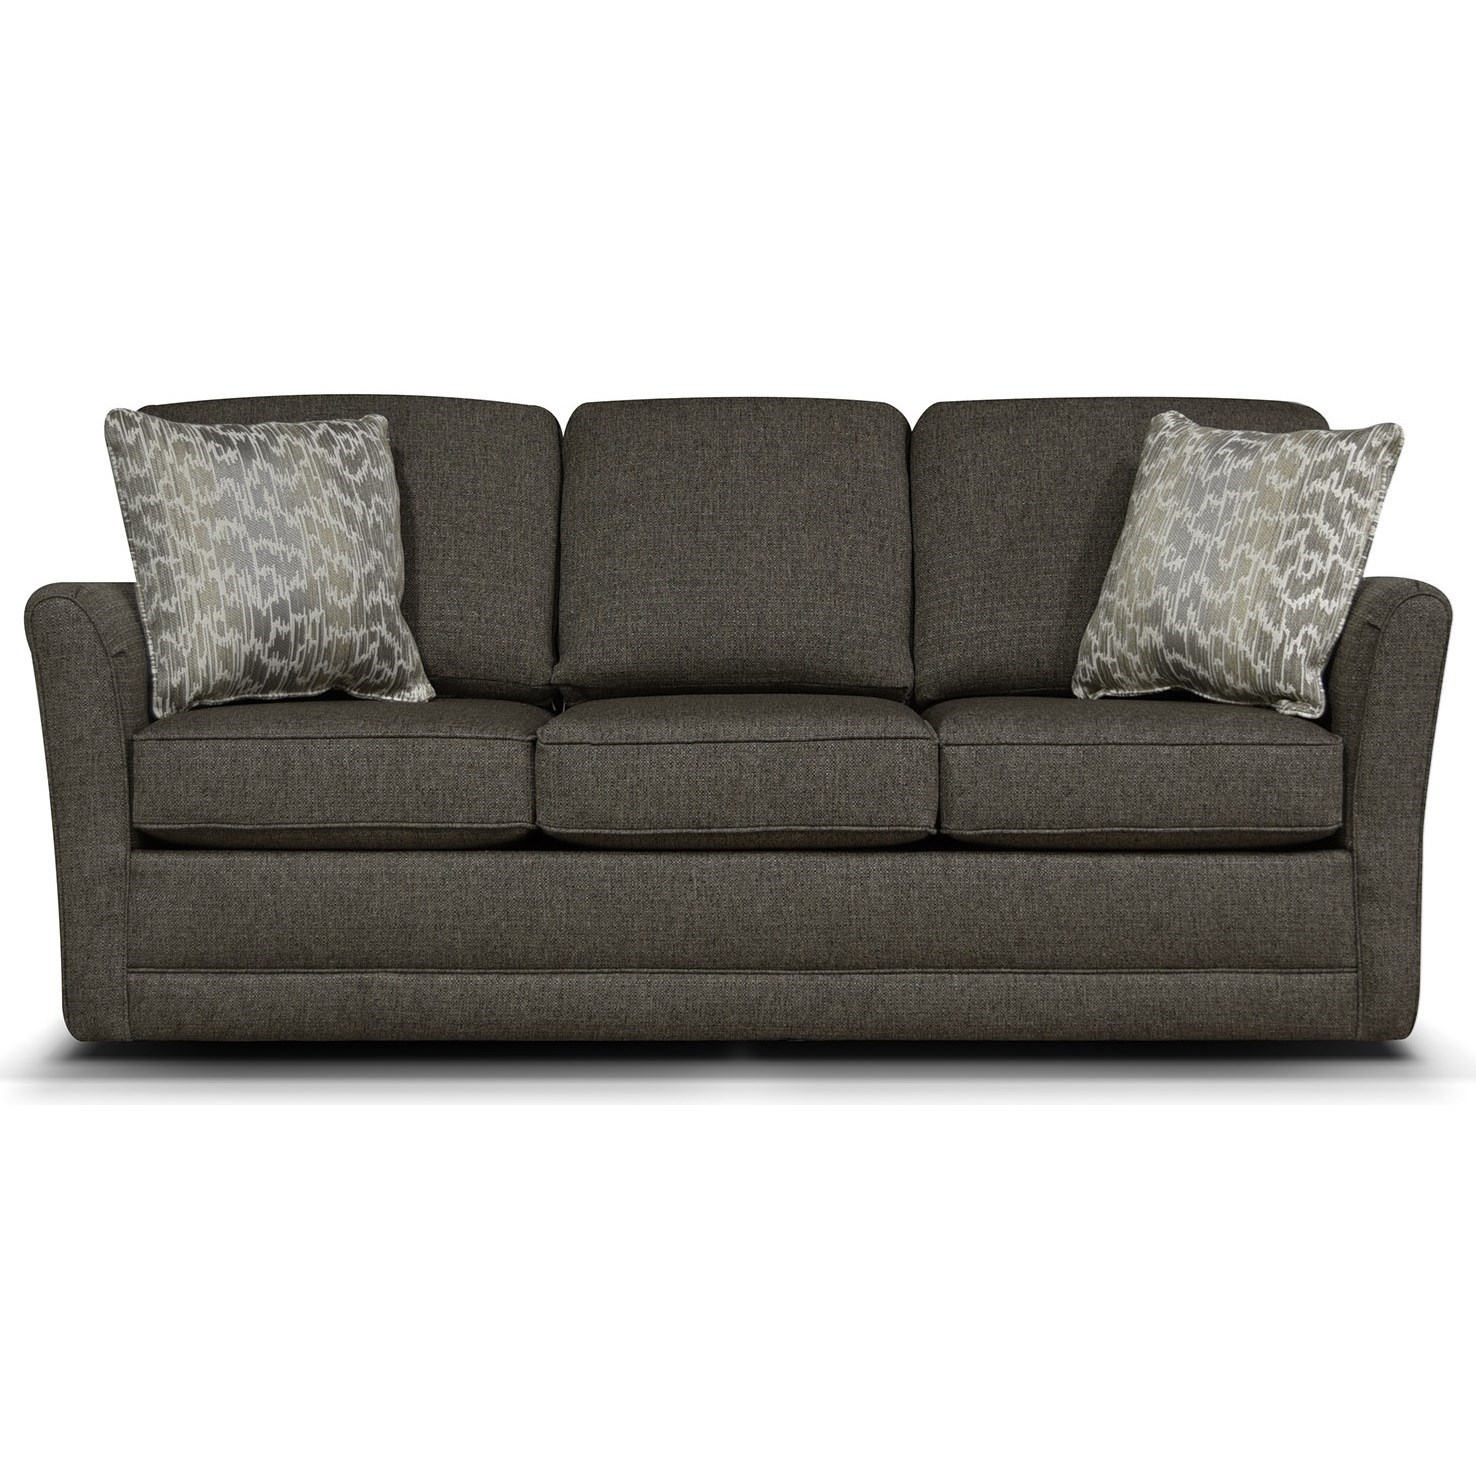 Tripp Queen Sleeper Sofa by England at Furniture and ApplianceMart